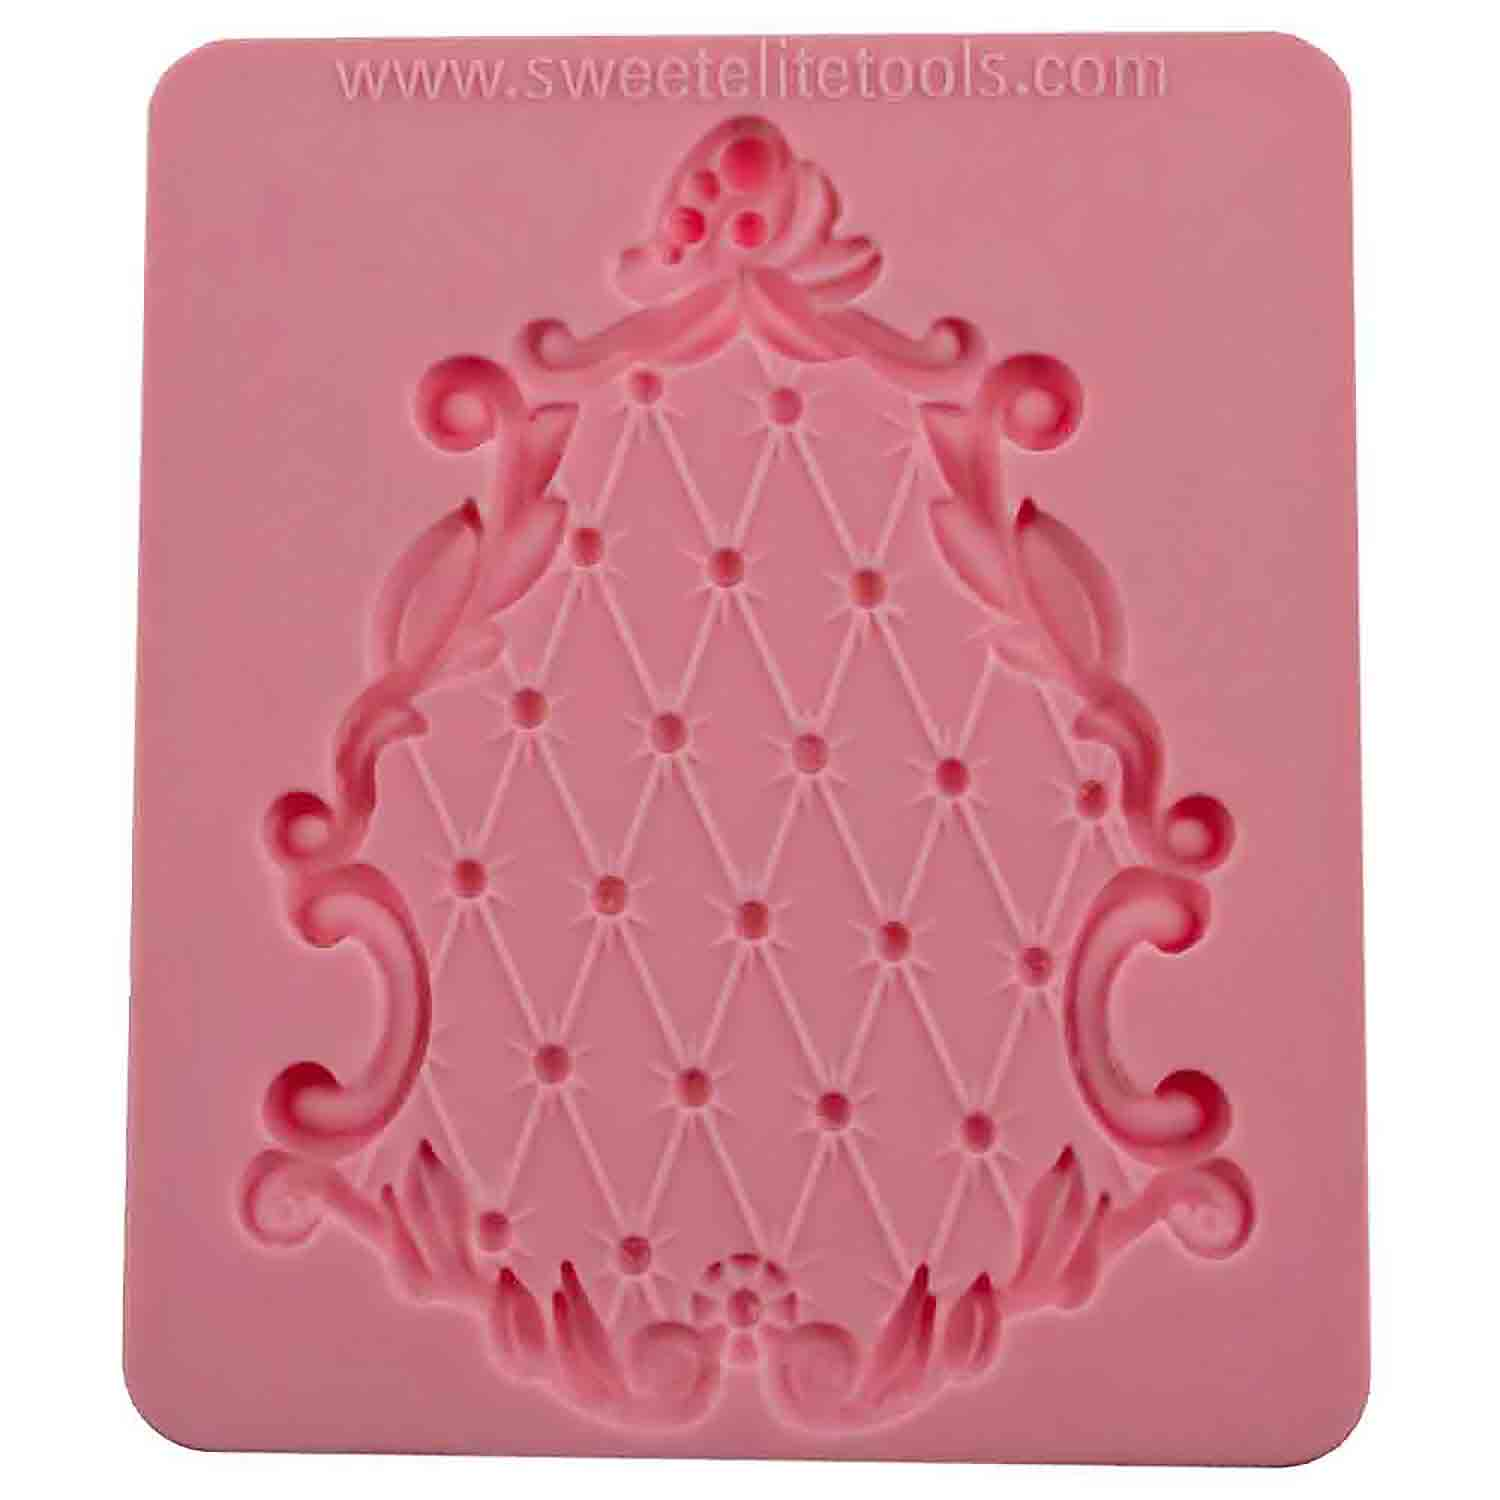 Pouf Plaque Silicone Mold by Colette Peters